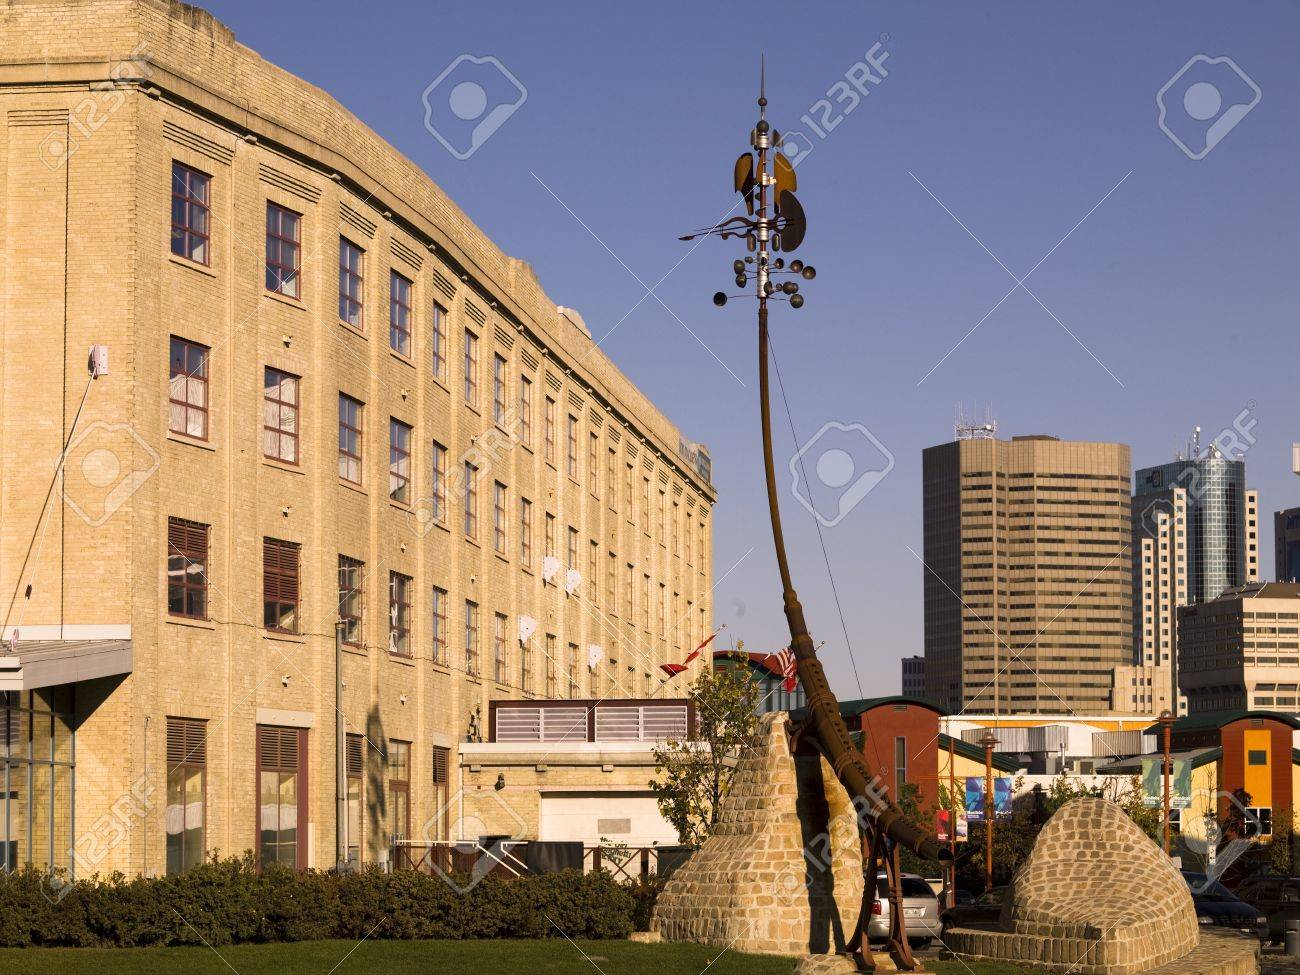 Sculpture and buildings at The Forks,Winnipeg,Manitoba,Canada Stock Photo - 8243925